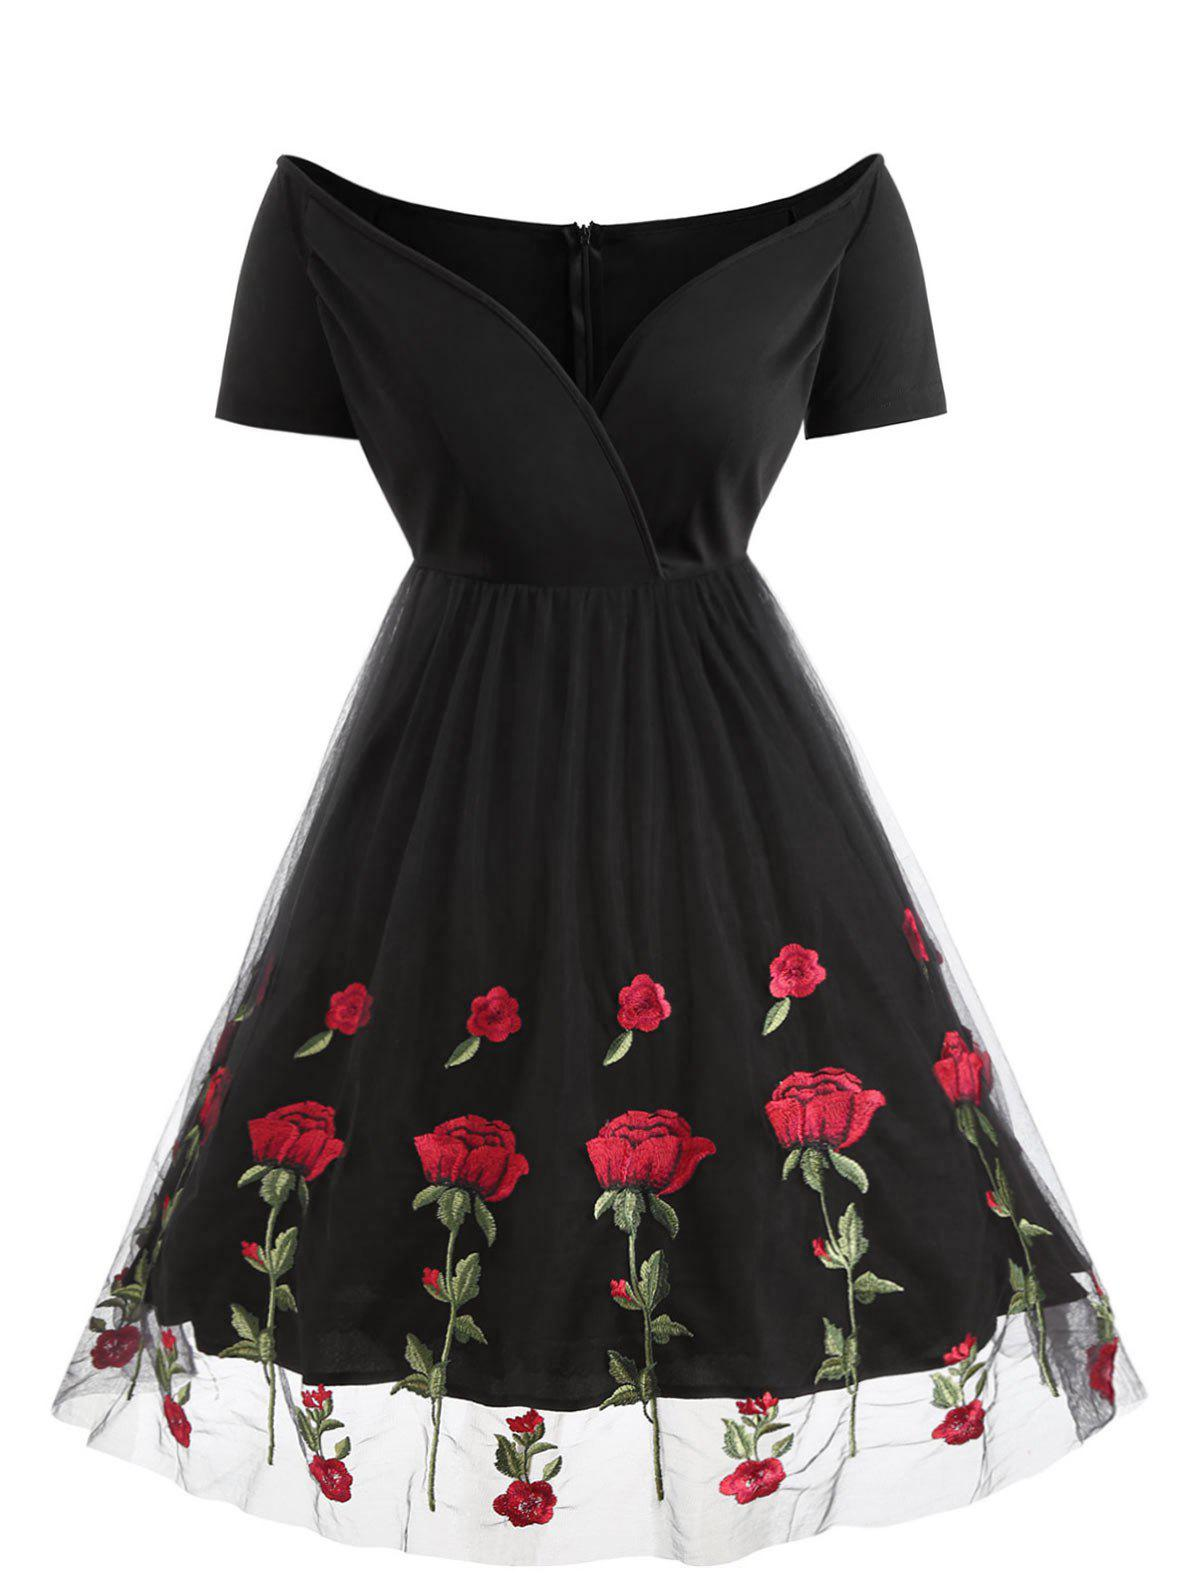 Fashion Plus Size Off Shoulder Vintage Surplice Dress with Embroidered